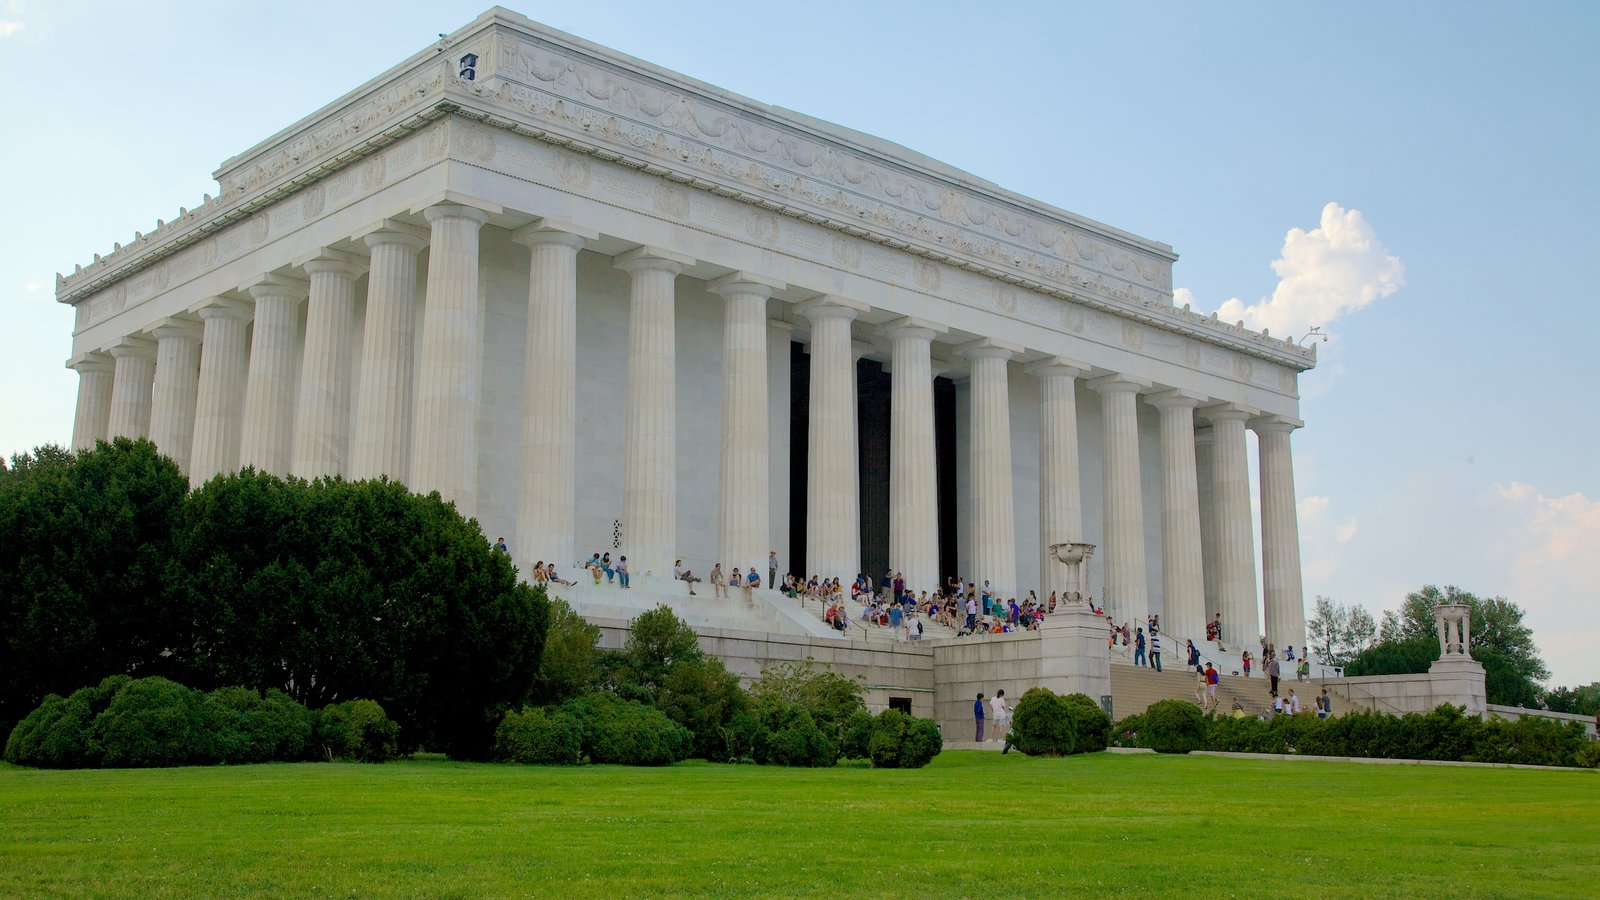 lincoln memorial pictures: view photos & images of lincoln memorial